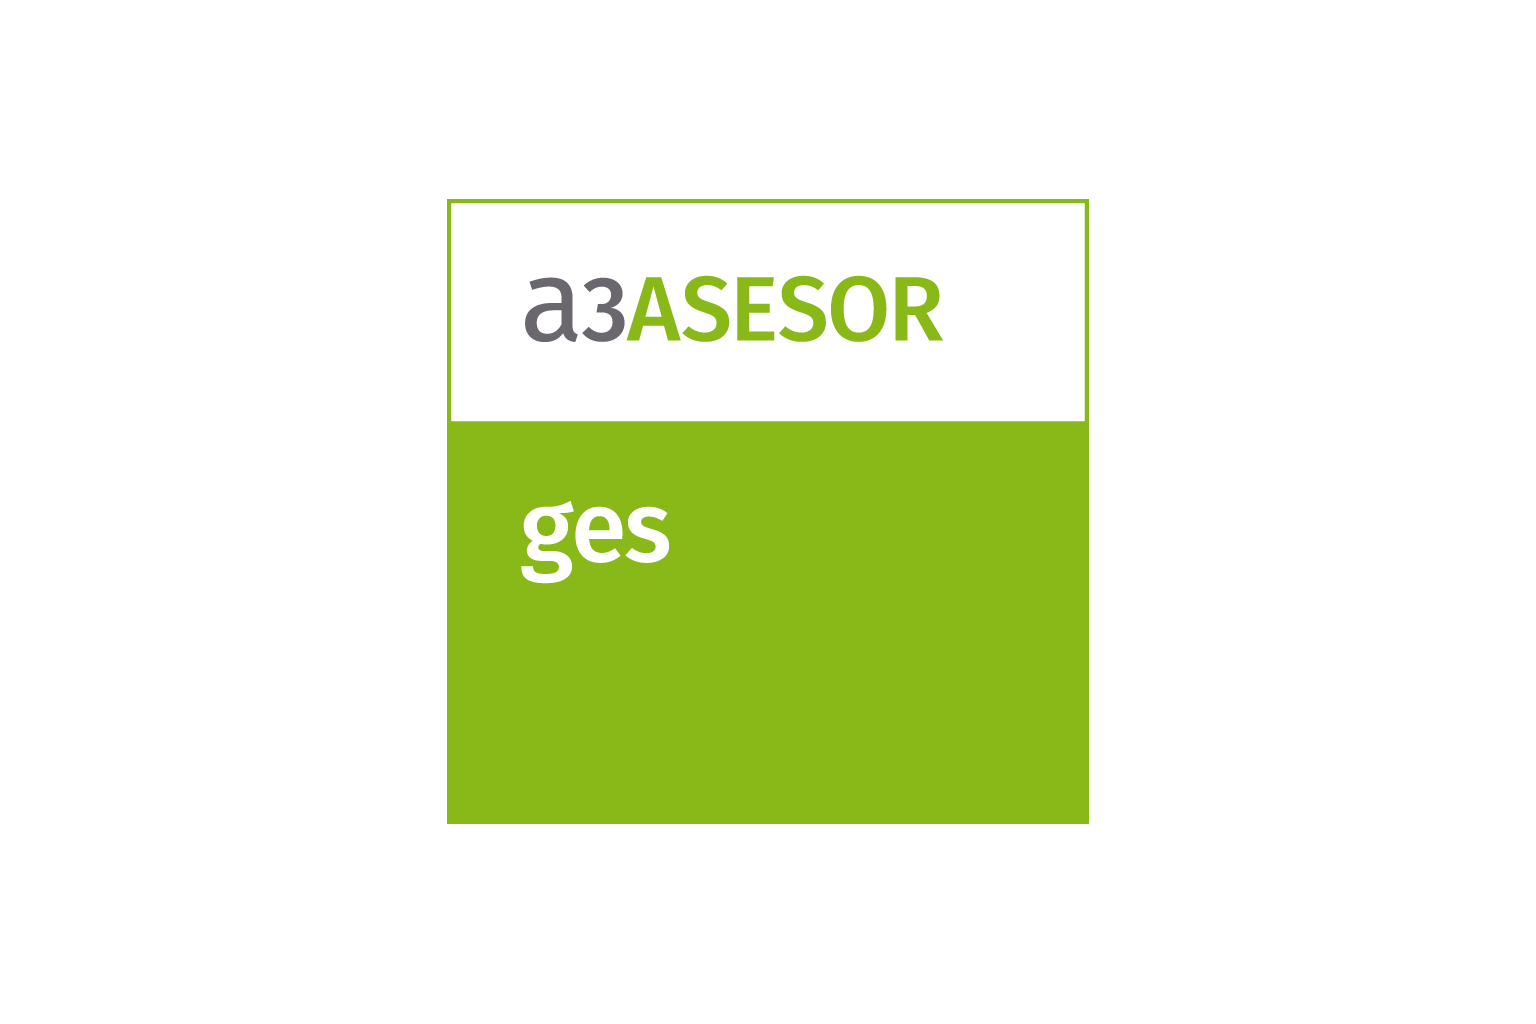 a3ASESOR-ges-3